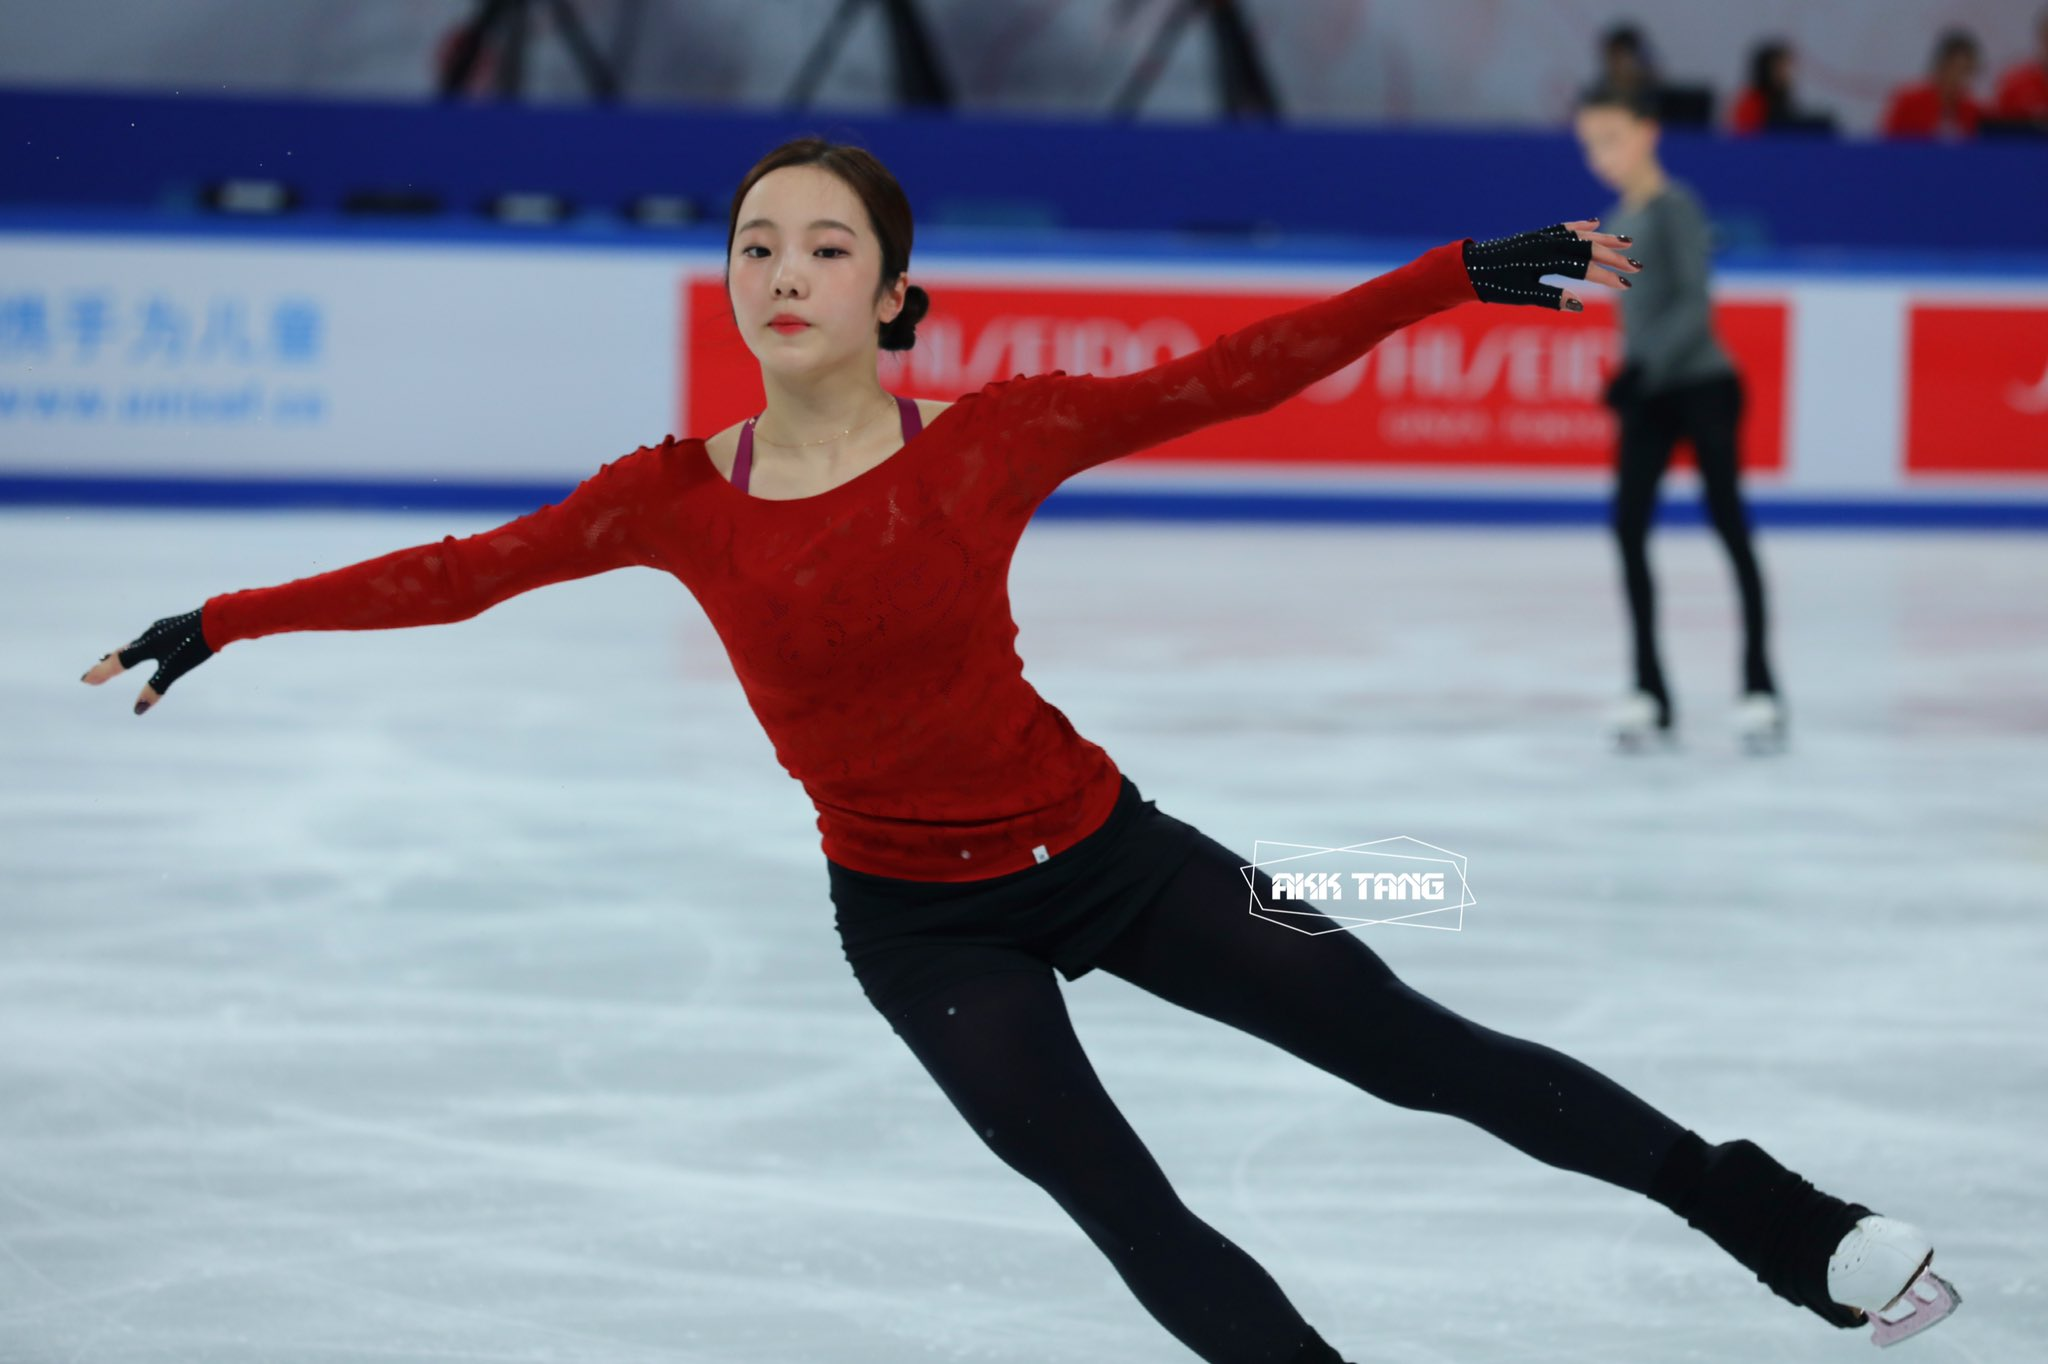 GP - 4 этап. Cup of China Chongqing / CHN November 8-10, 2019 - Страница 2 EIxJ_bYU8AAl-SB?format=jpg&name=4096x4096